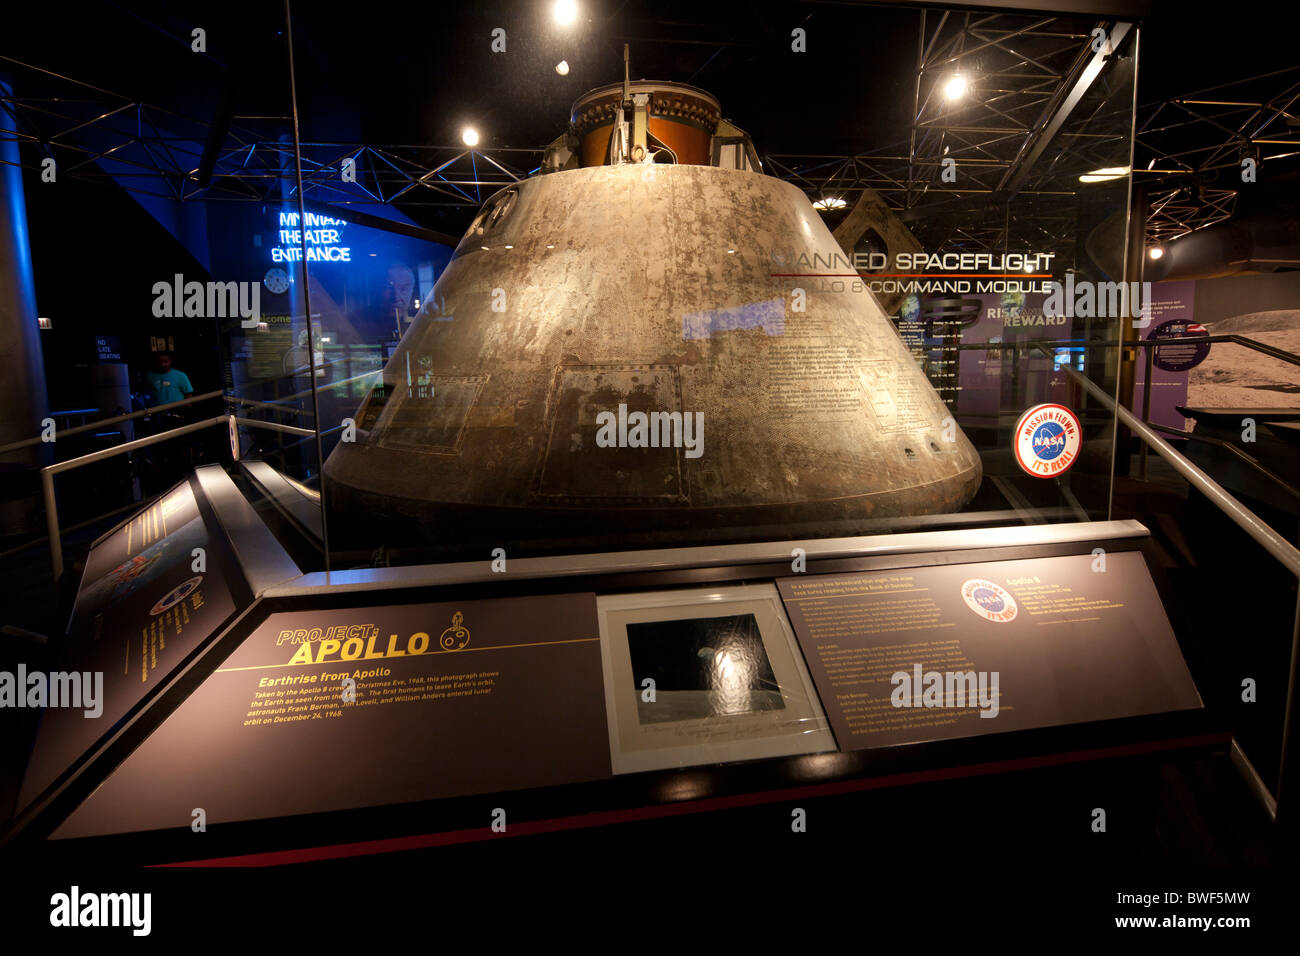 Apollo 8 Command Module, Museum of Science and Industry, Chicago, USA - Stock Image